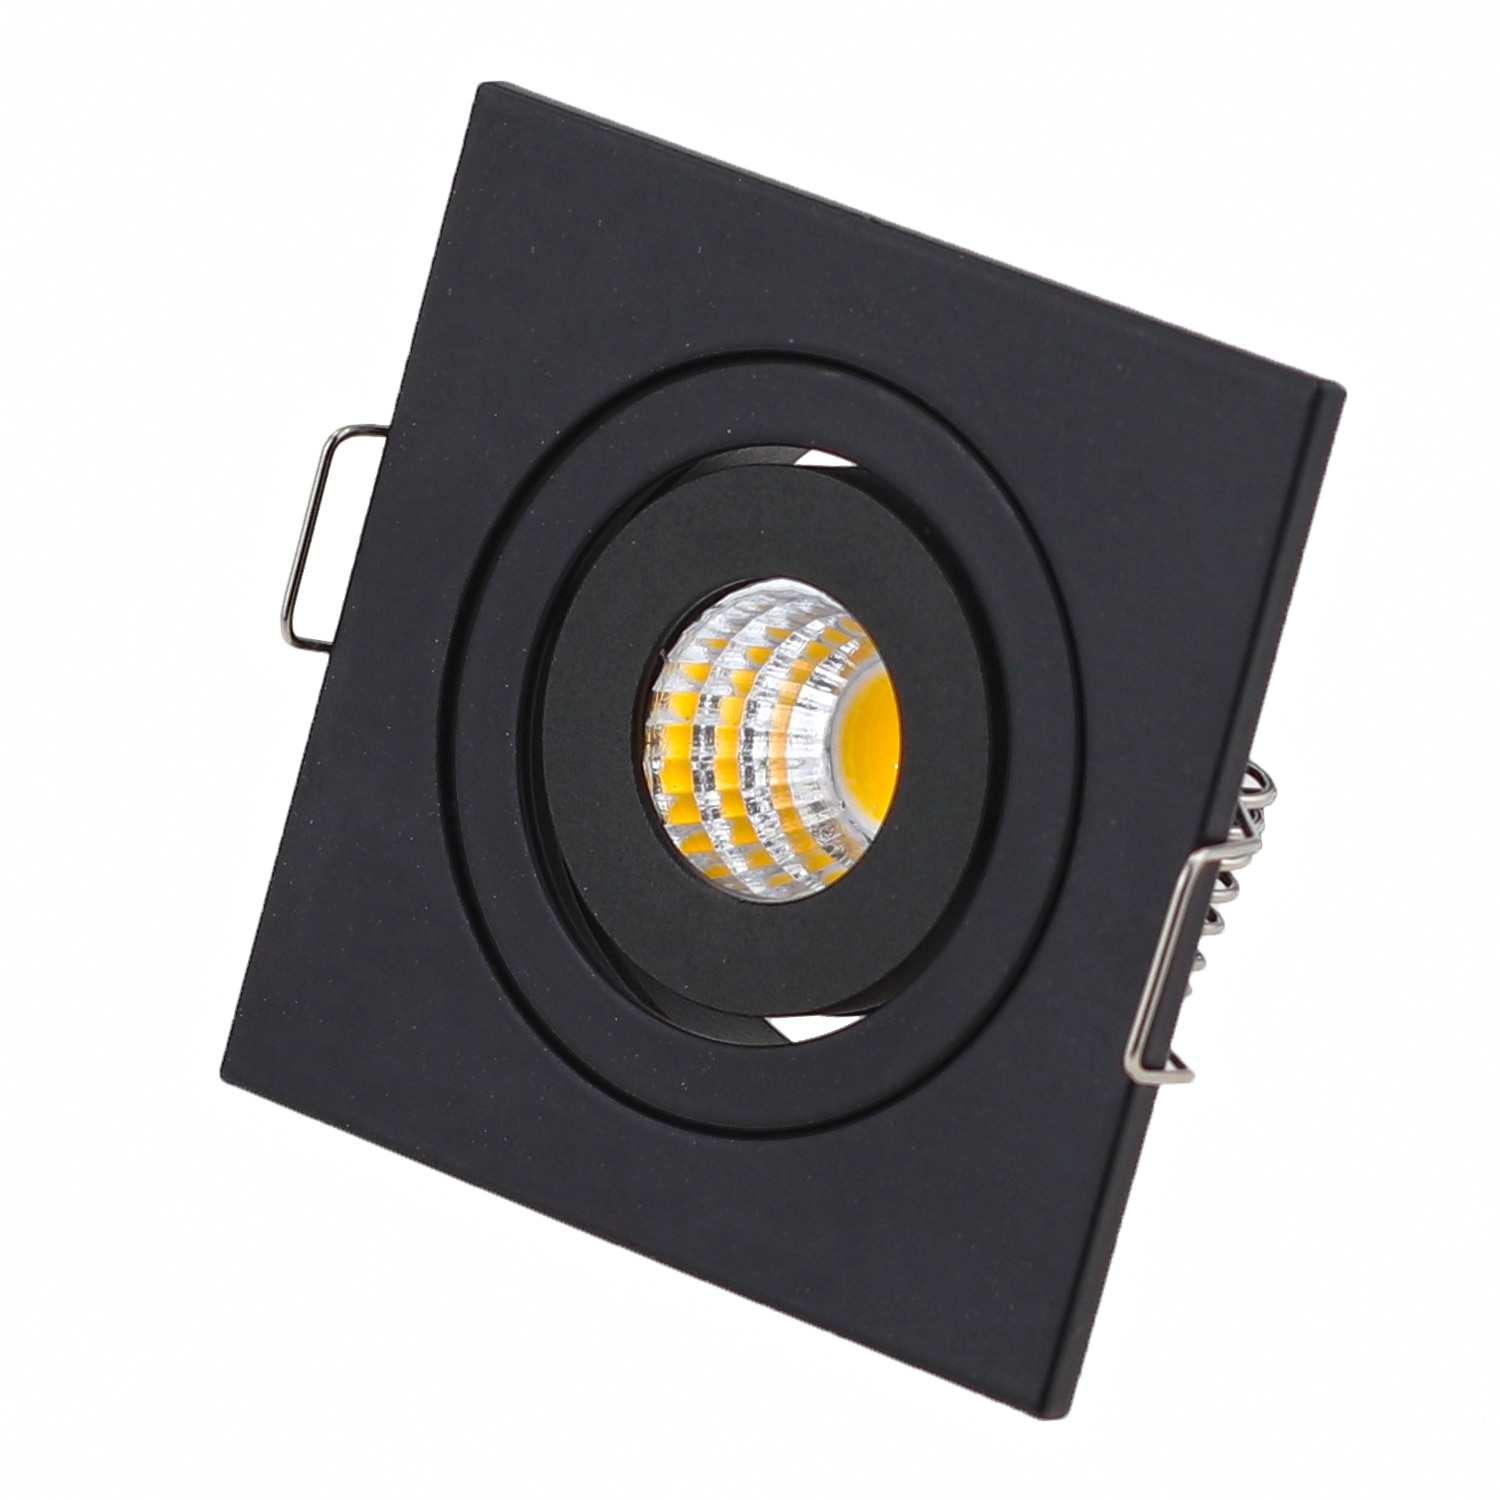 10pcs Square Dimmable Embedded LED Waterproof Ip65 Cob Ceiling 3W Bathroom Kitchen Hotel Shower Room LED Downlight Cob Lamp enlarge